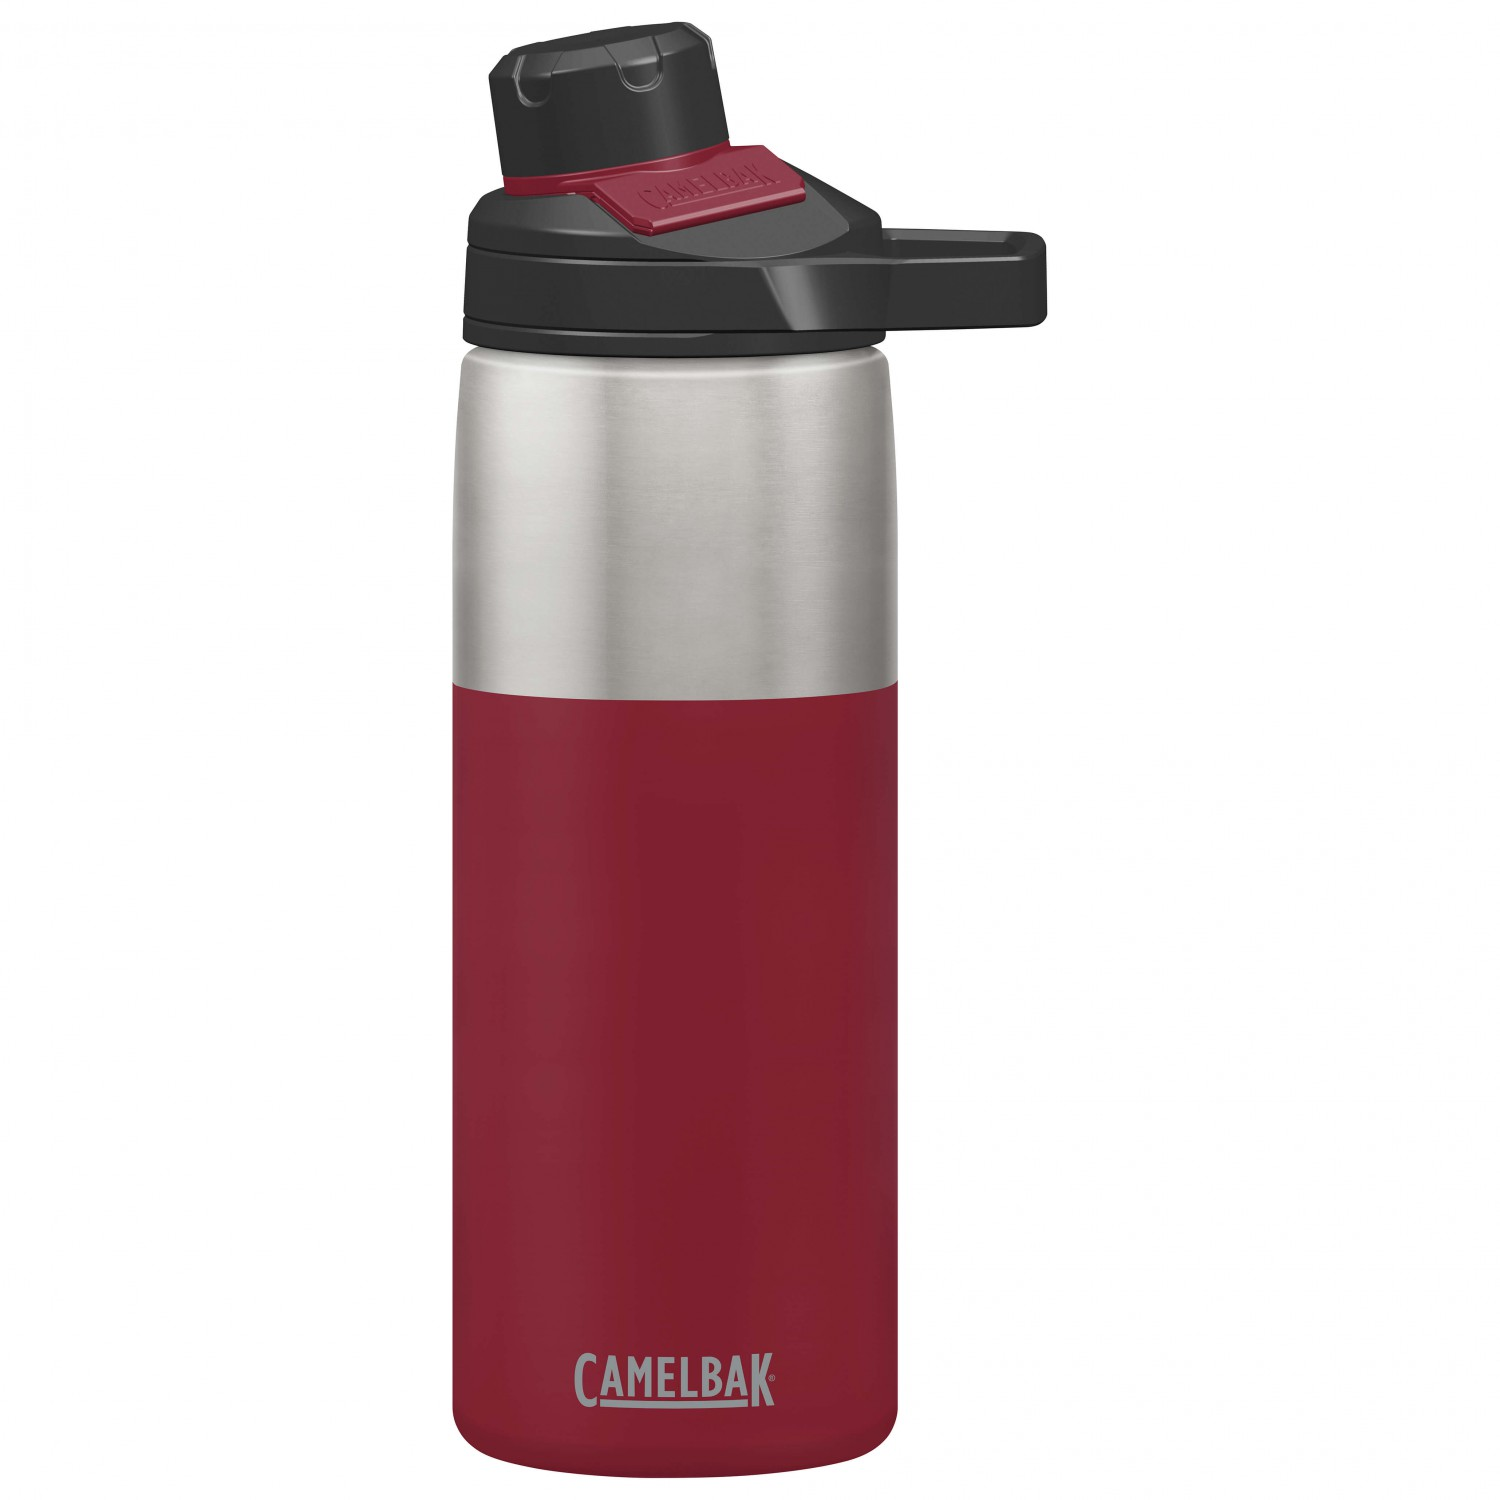 Camelbak Chute Mag Vacuum Insulated 6l Insulated Bottle